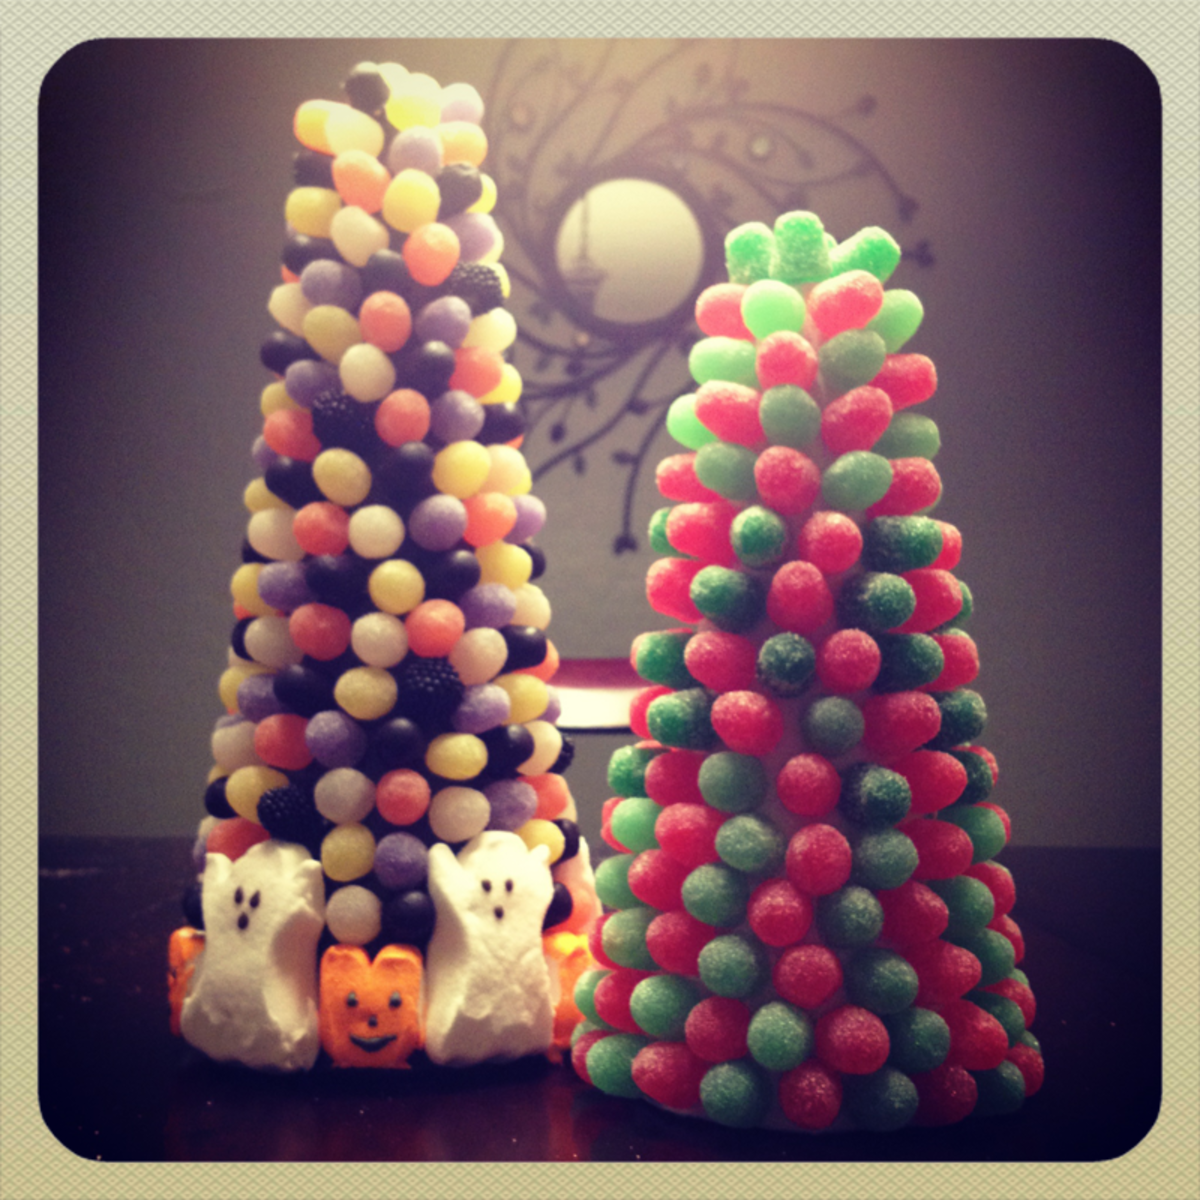 hand-crafted gumdrop trees for Halloween and Christmas